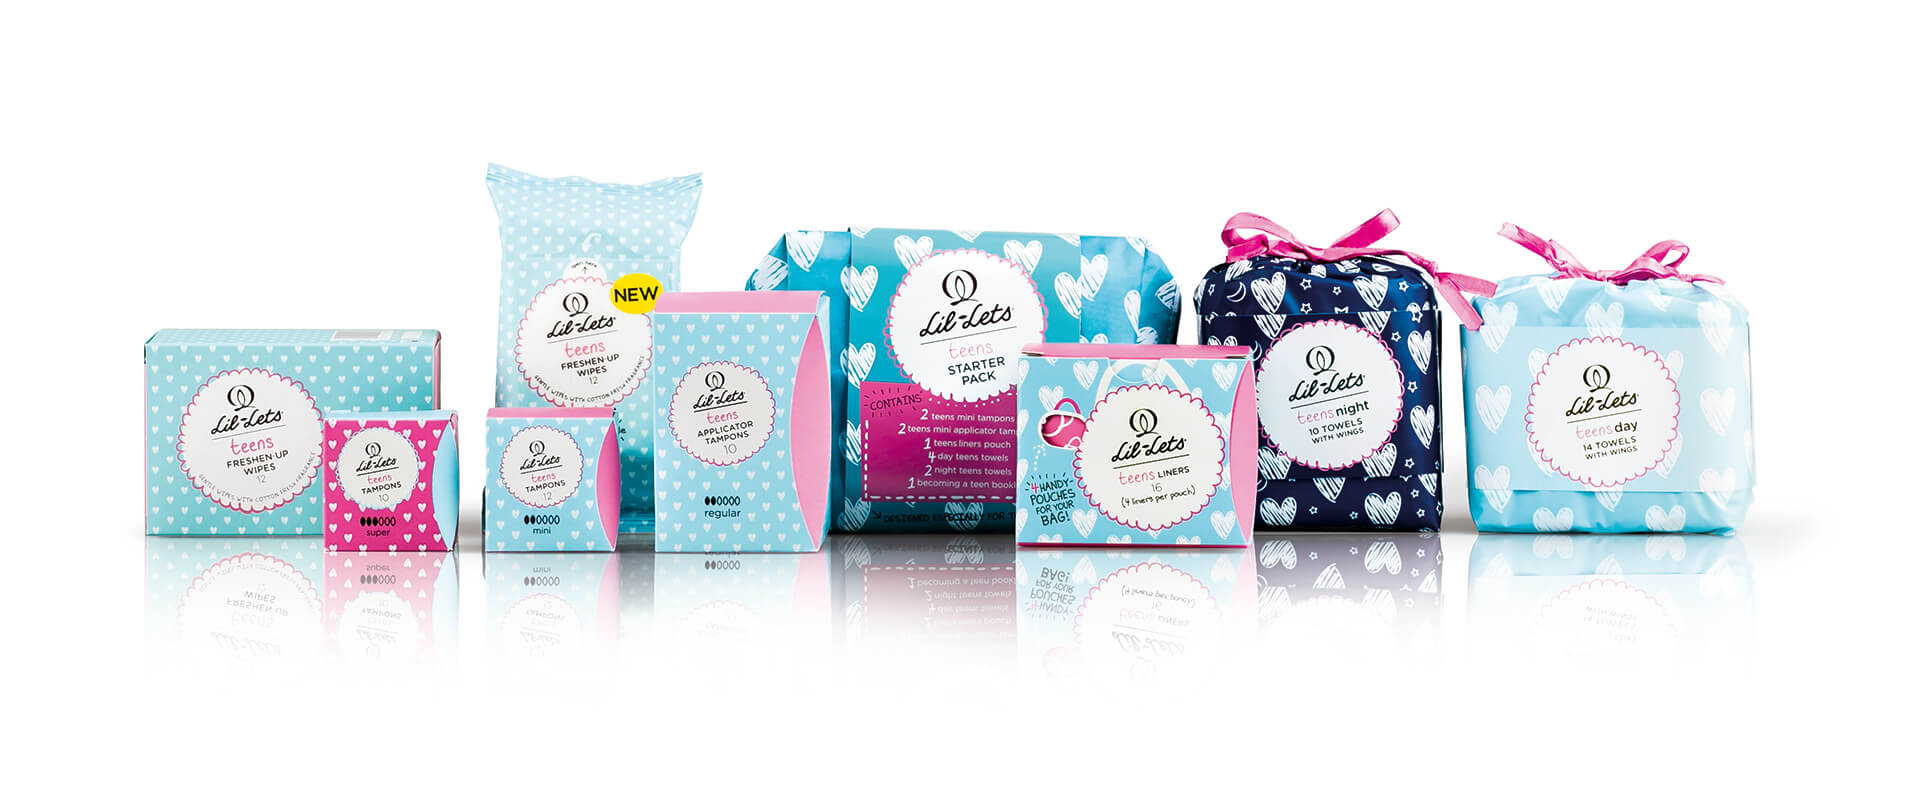 Creative Coup Branding Services Lil-Lets teen packs in group shot